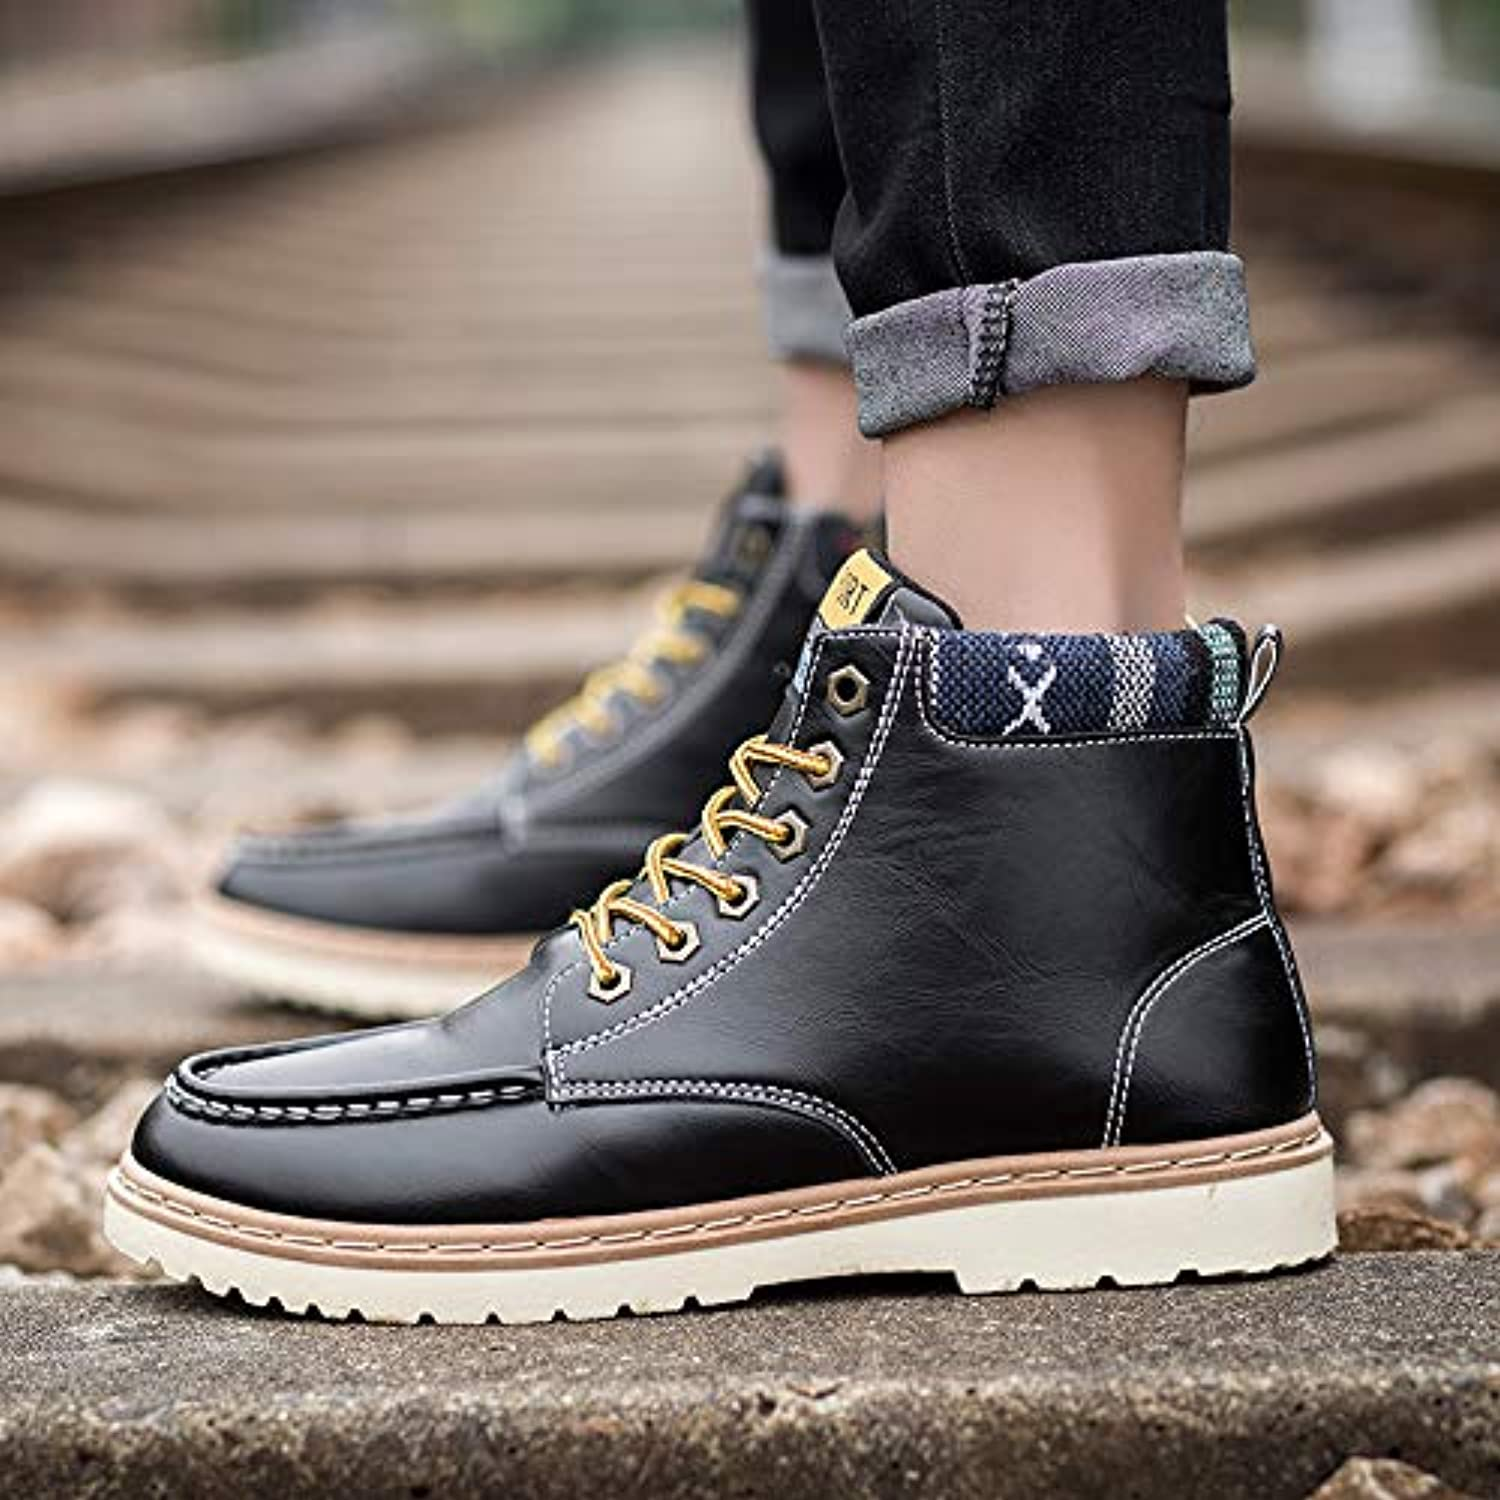 LOVDRAM Boots Men's Martin Boots Men'S shoes Boots Fashion Boots Men'S Fashion High Help Tool Boots Autumn And Winter